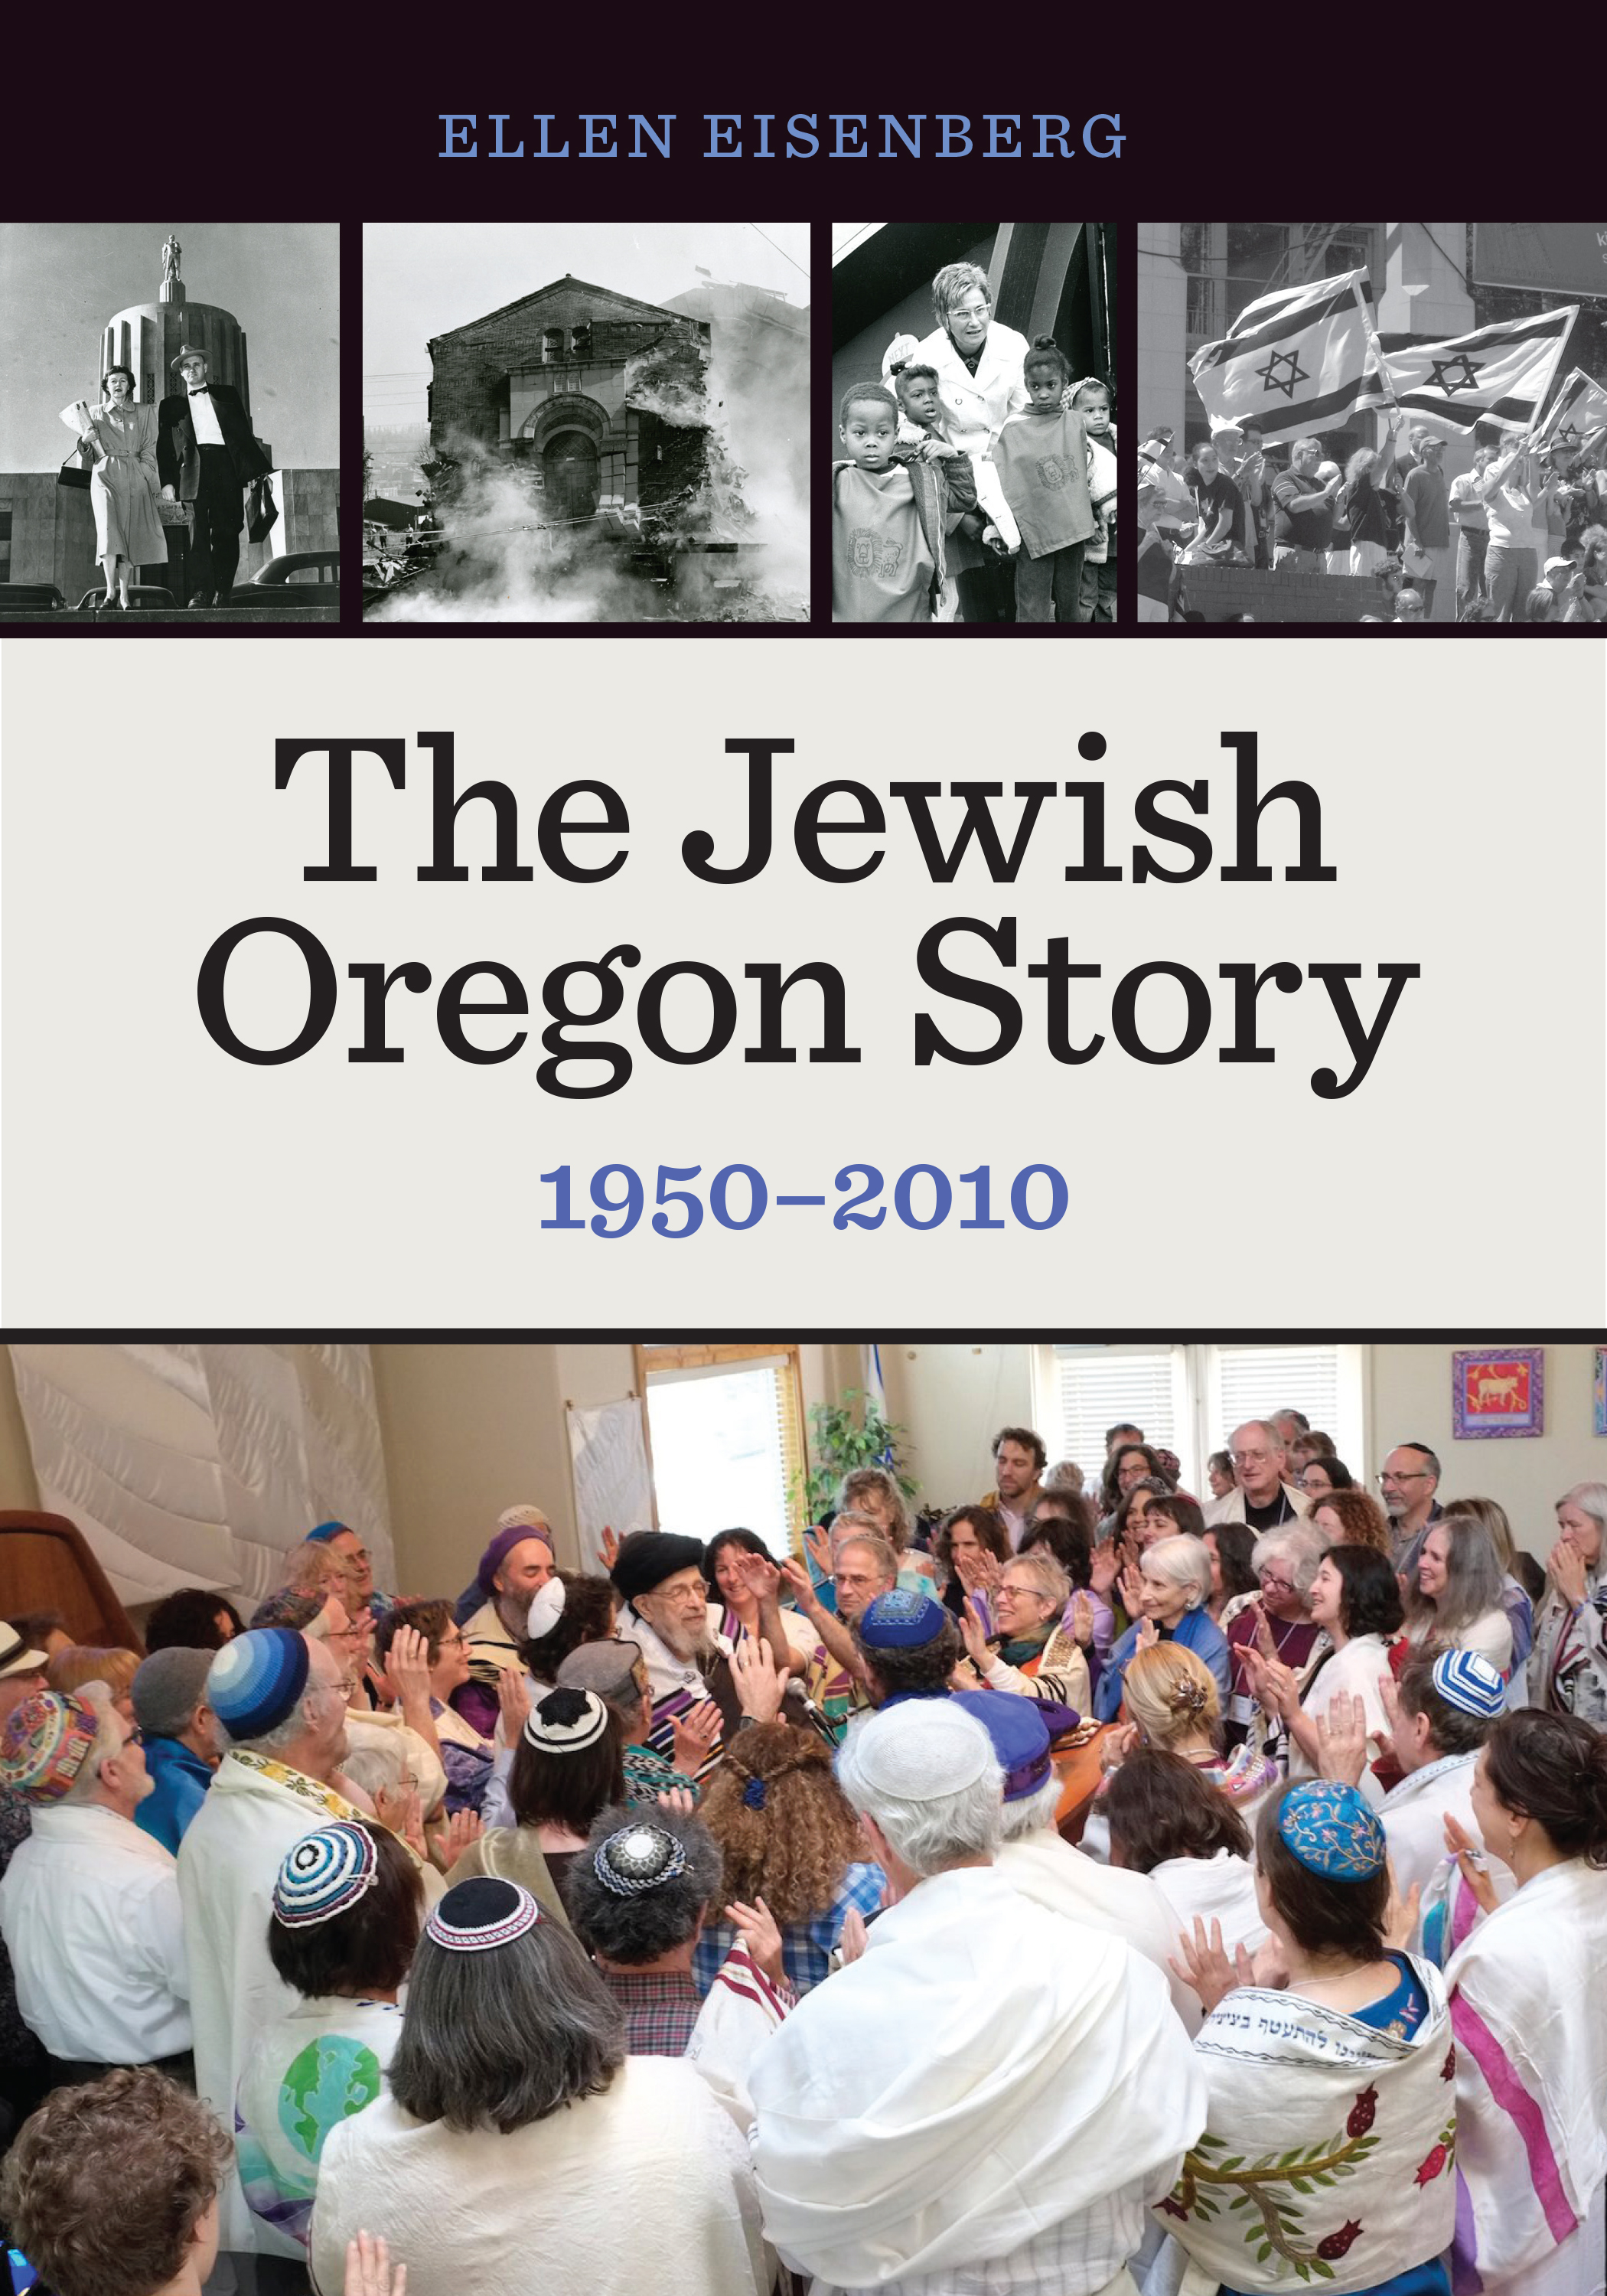 The Jewish Oregon Story: 1950-2010